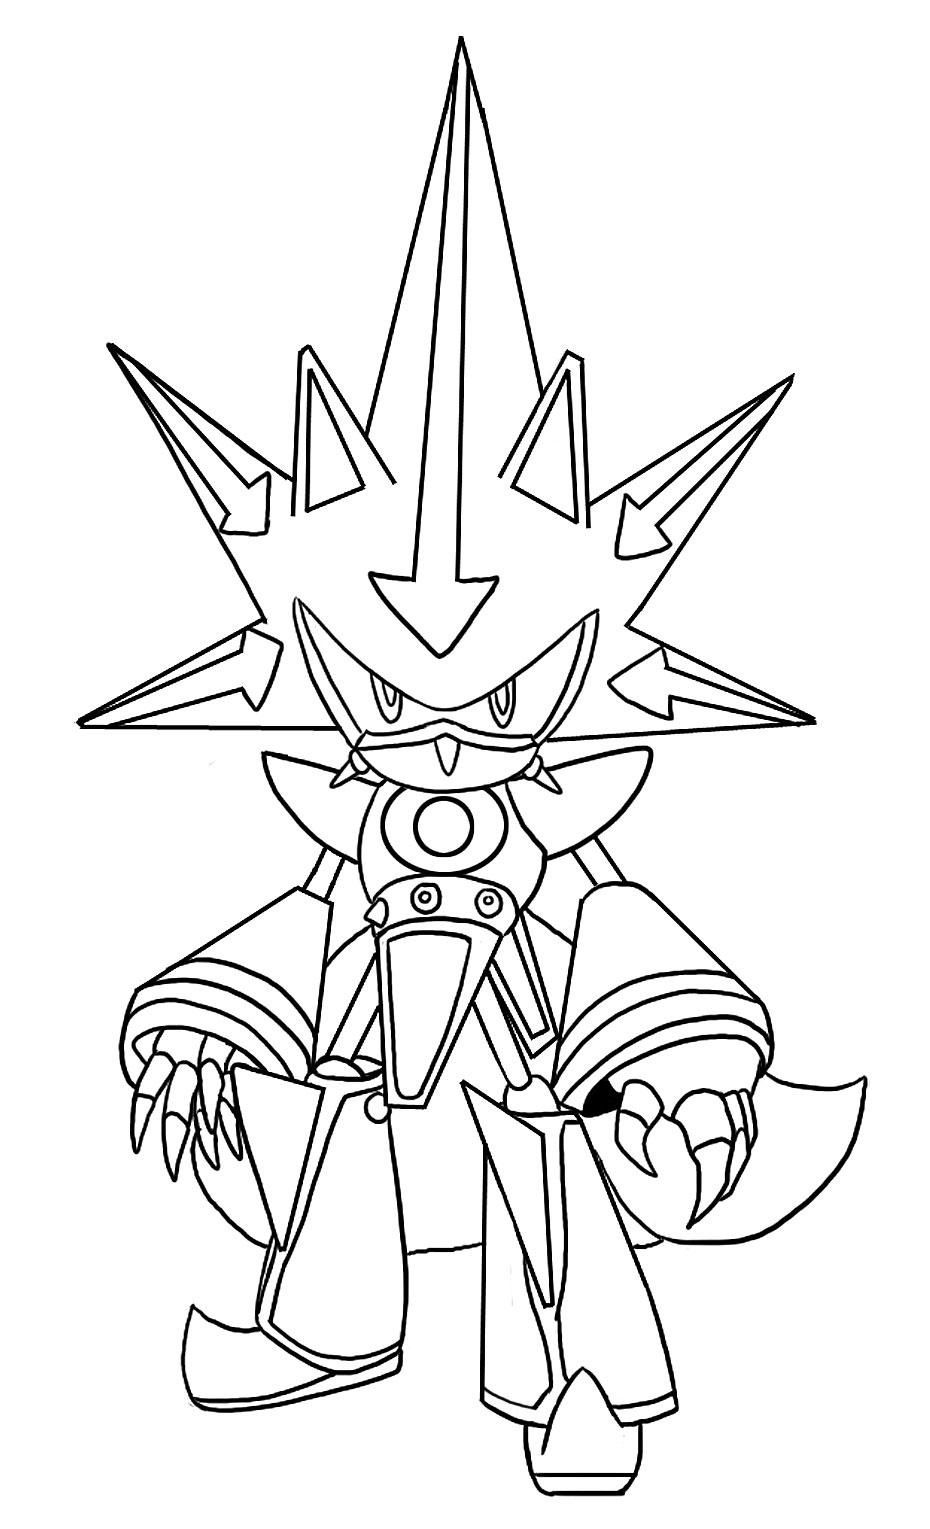 Sonic 2 Coloring Pages Coloring Pages Free Coloring Pages How